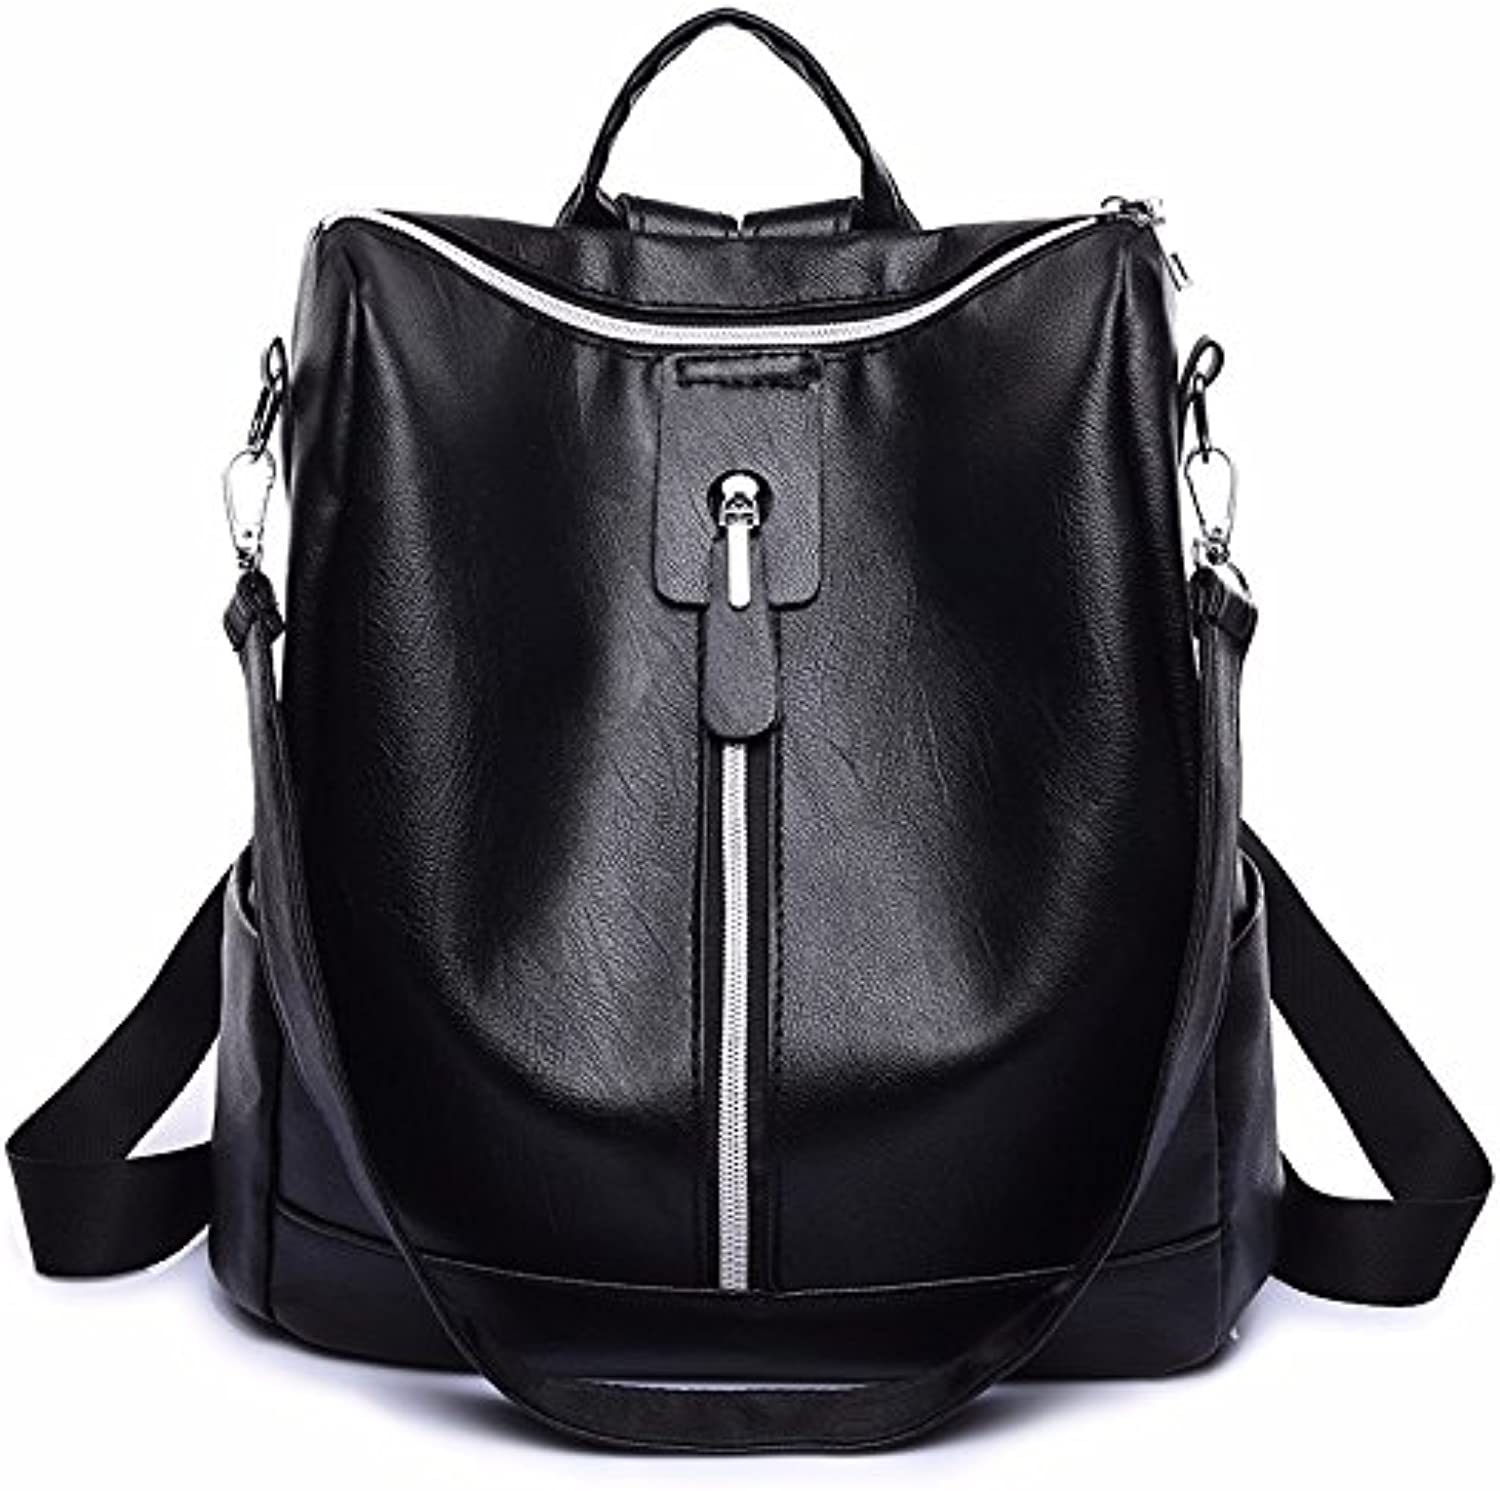 New Style Pu Dual use Shoulder Bag, Women's Simple Fashion Backpack Soft Leather Bag Travel Bag